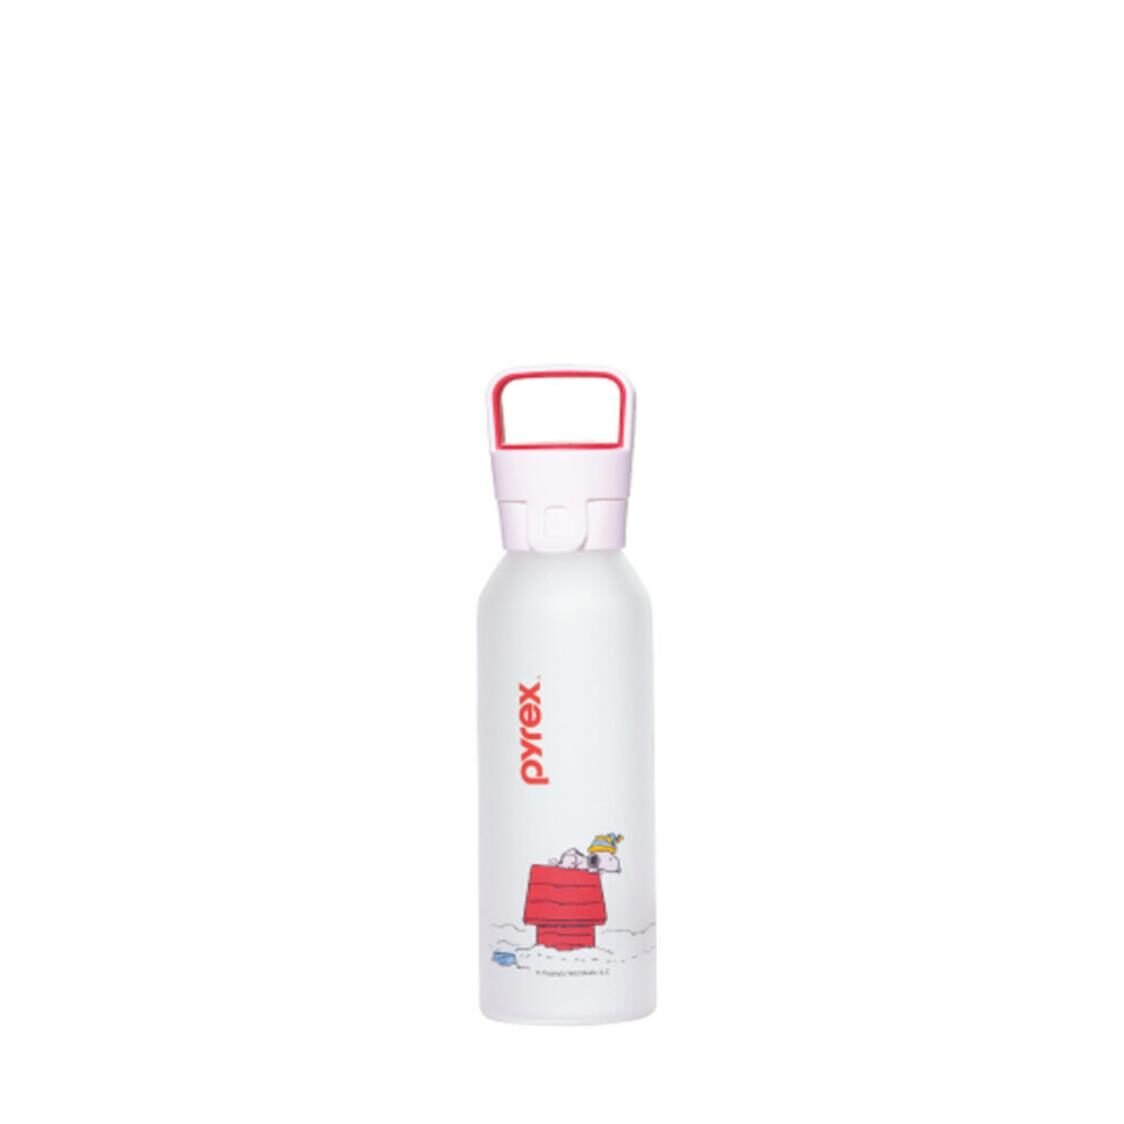 Pyrex Snoopy x Water Bottle 450ml Design Peanuts Snoopy